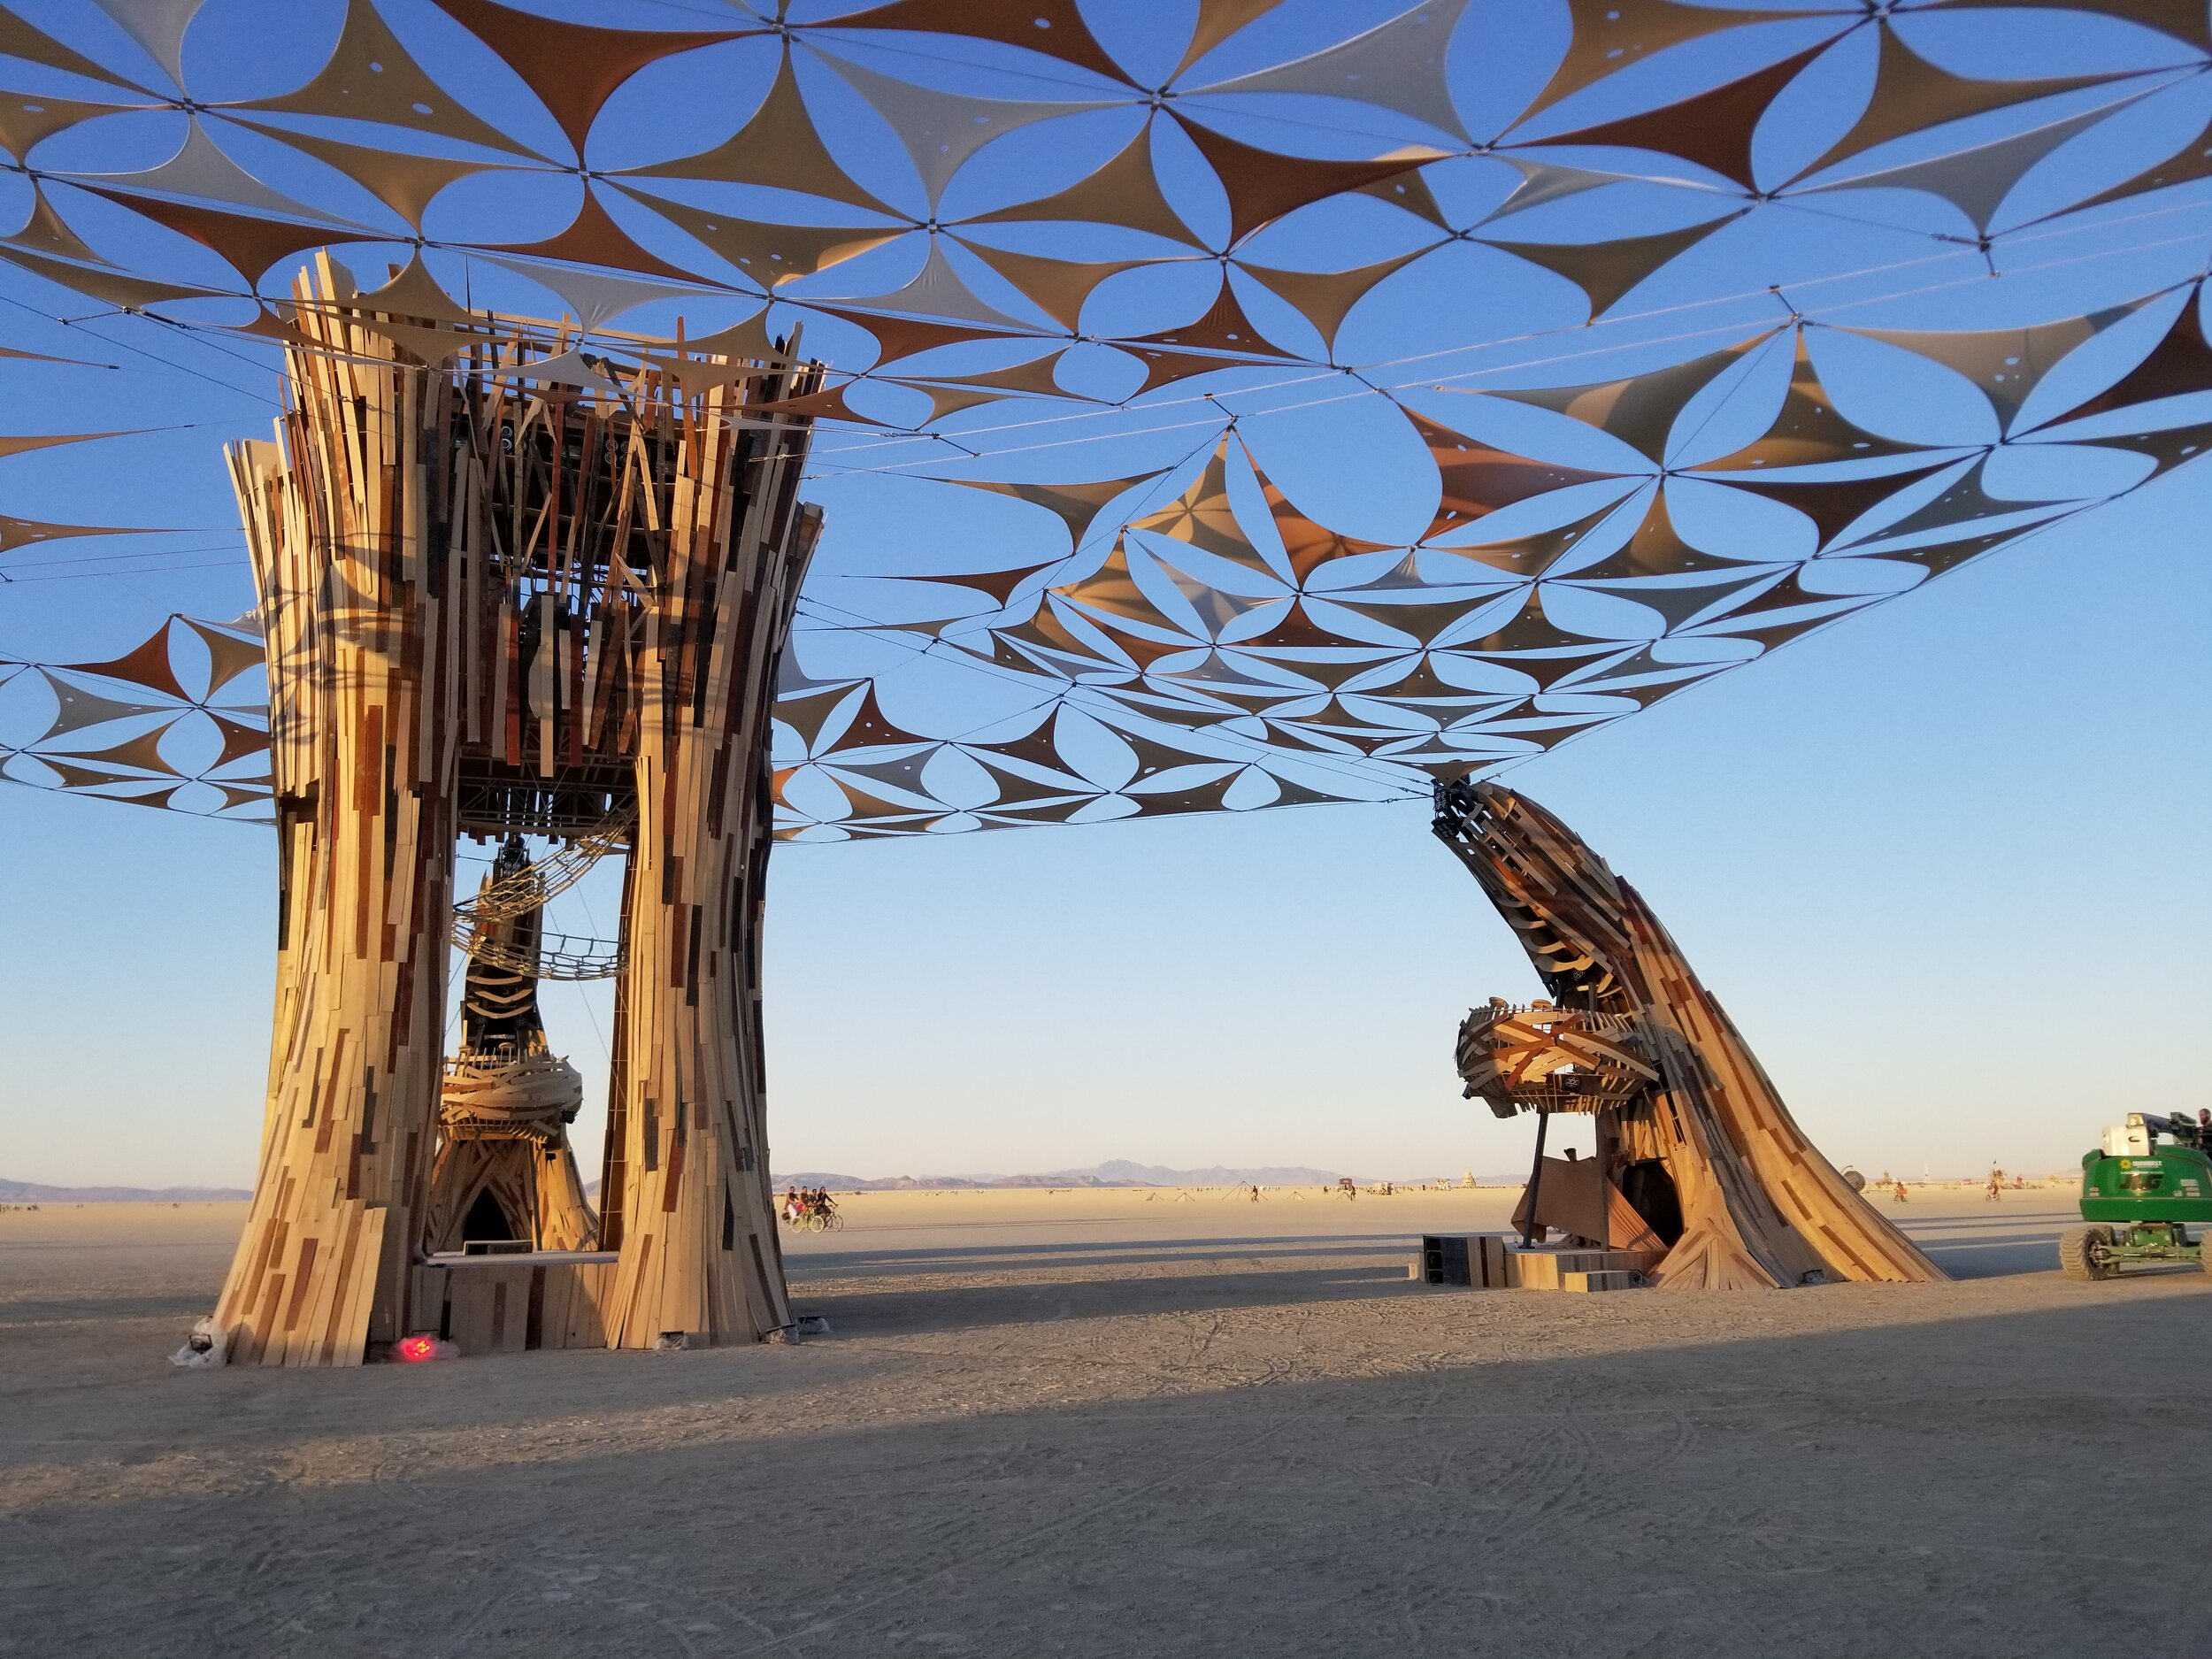 Root CathedralLogistics, communication, strike - For Burning Man 2019, the visionaries behind the Root Society decided to build a stage of epic proportions. So came the idea for the Root Cathedral, which was designed by Dallas Swindle and built by crews from New York, Austin, and San Francisco. I managed communications between crew and leadership, created a build plan document, coordinated steel shipments, and helped to deconstruct the monument once the party was over. dasivdesign.com